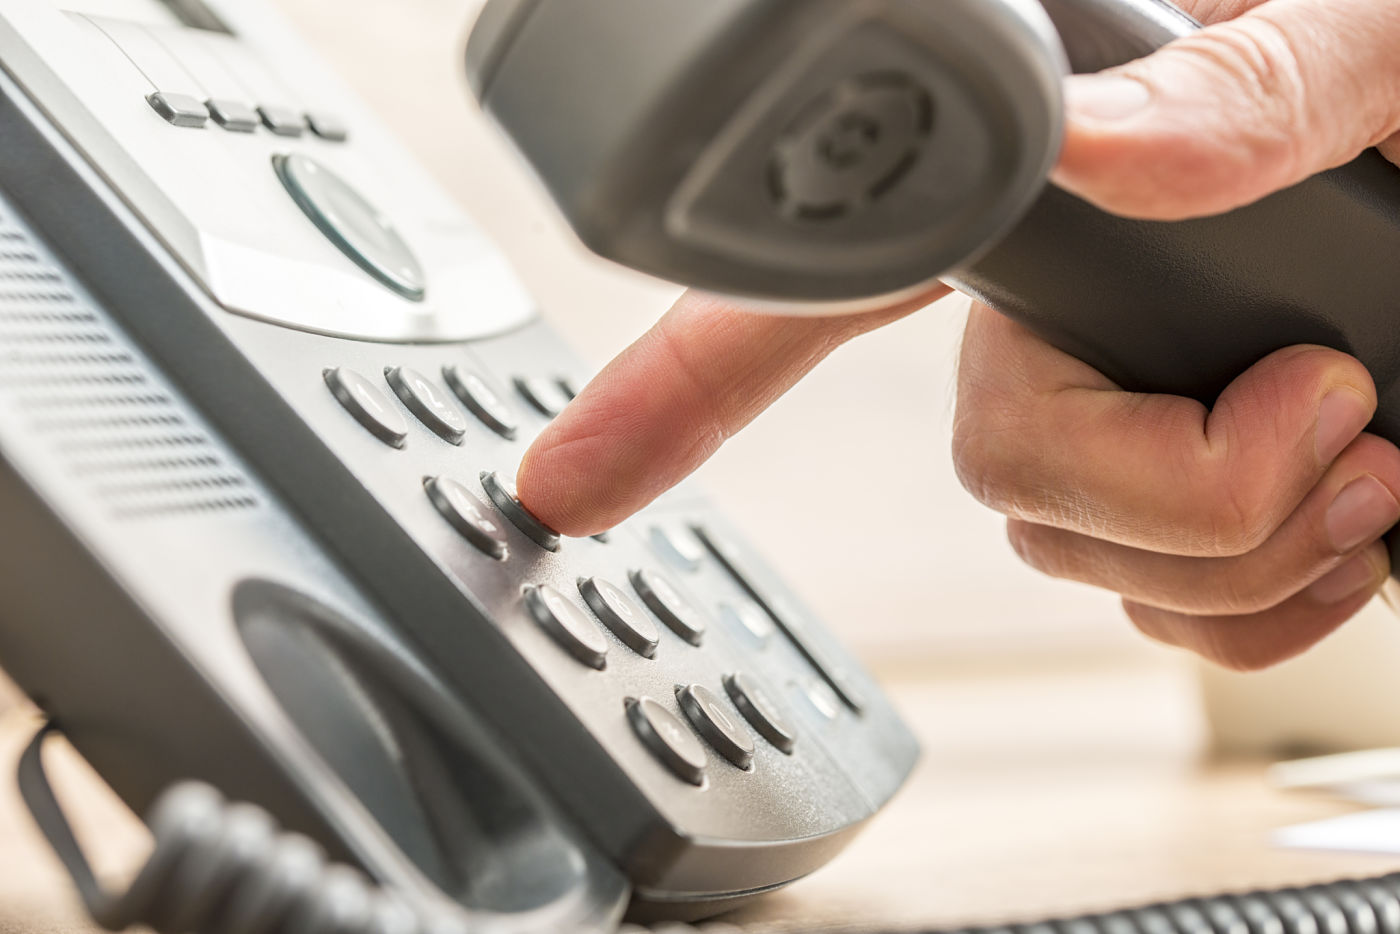 GP receptionists 'need more training to recognise stroke symptoms'